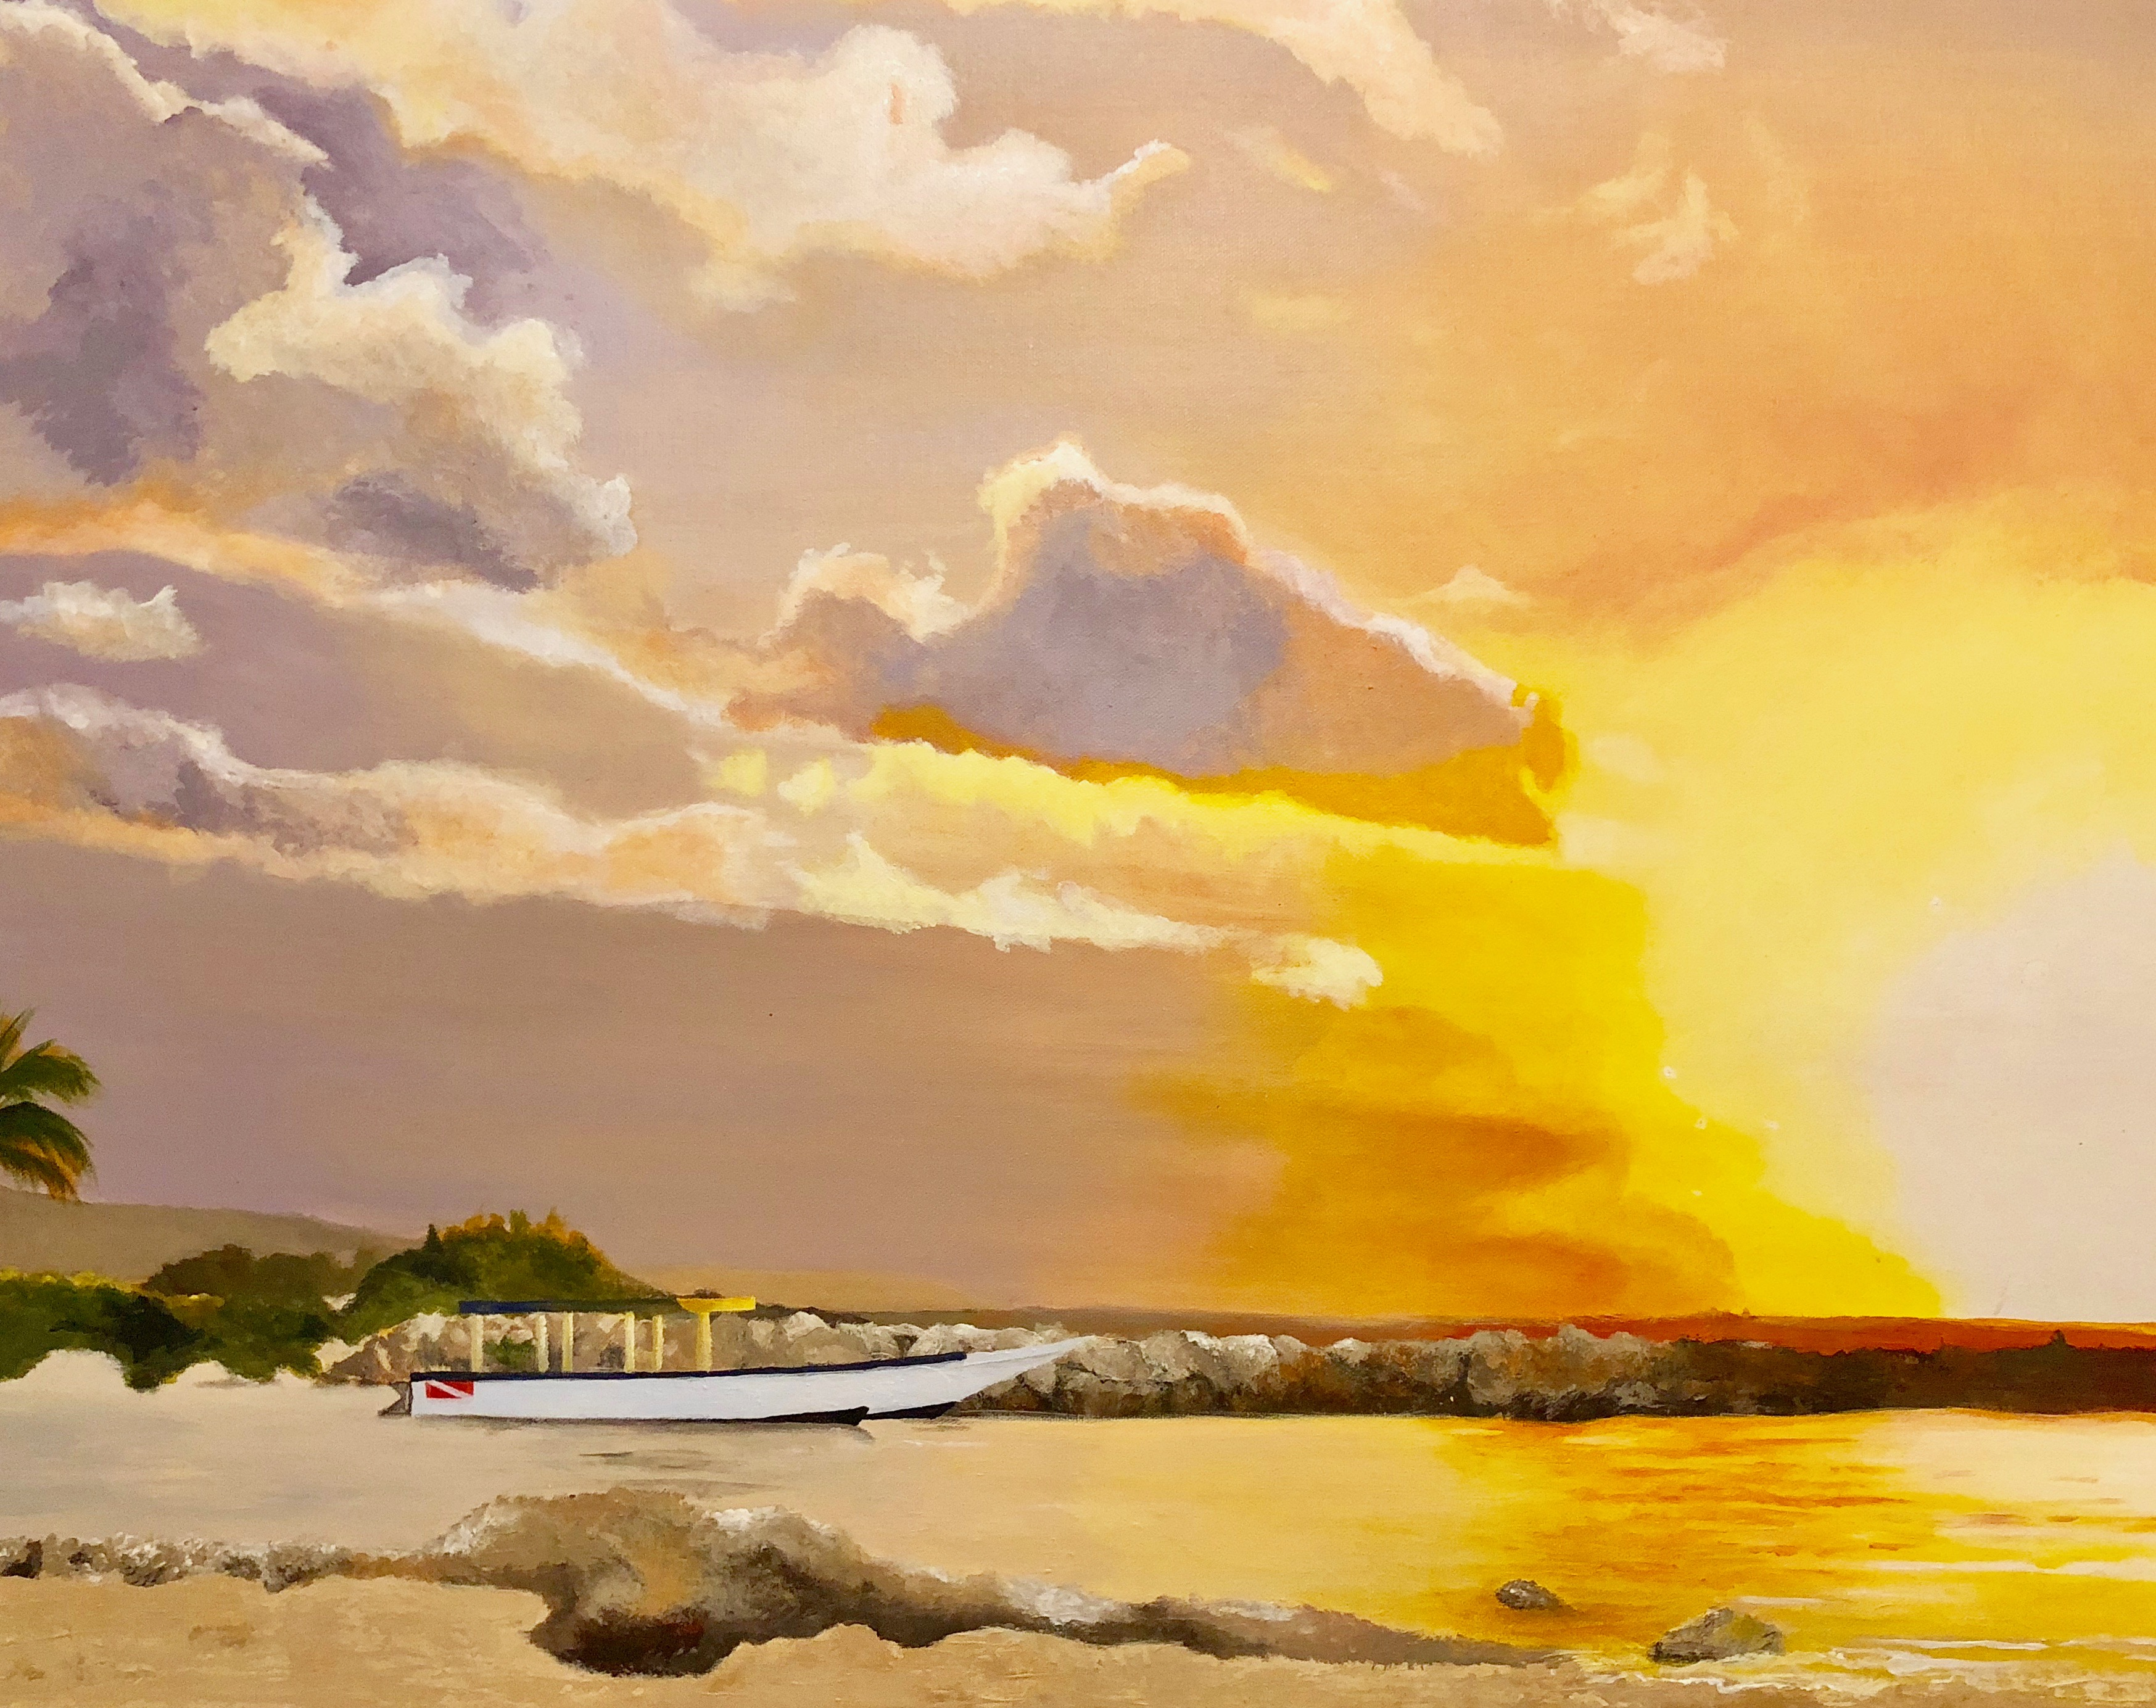 Sunset in Jamaica artwork by Renee - art listed for sale on Artplode